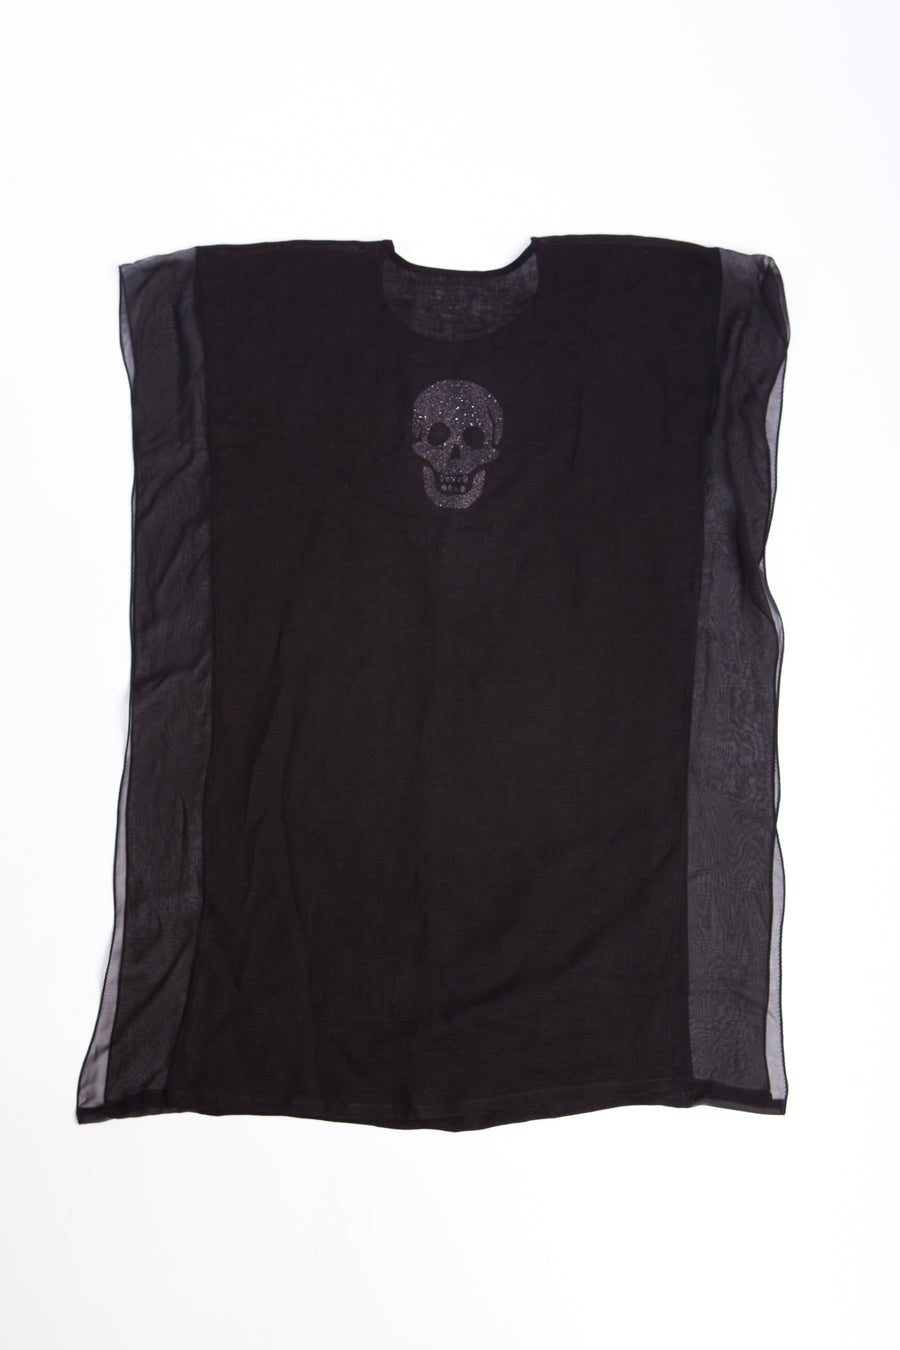 Double layer top with skull